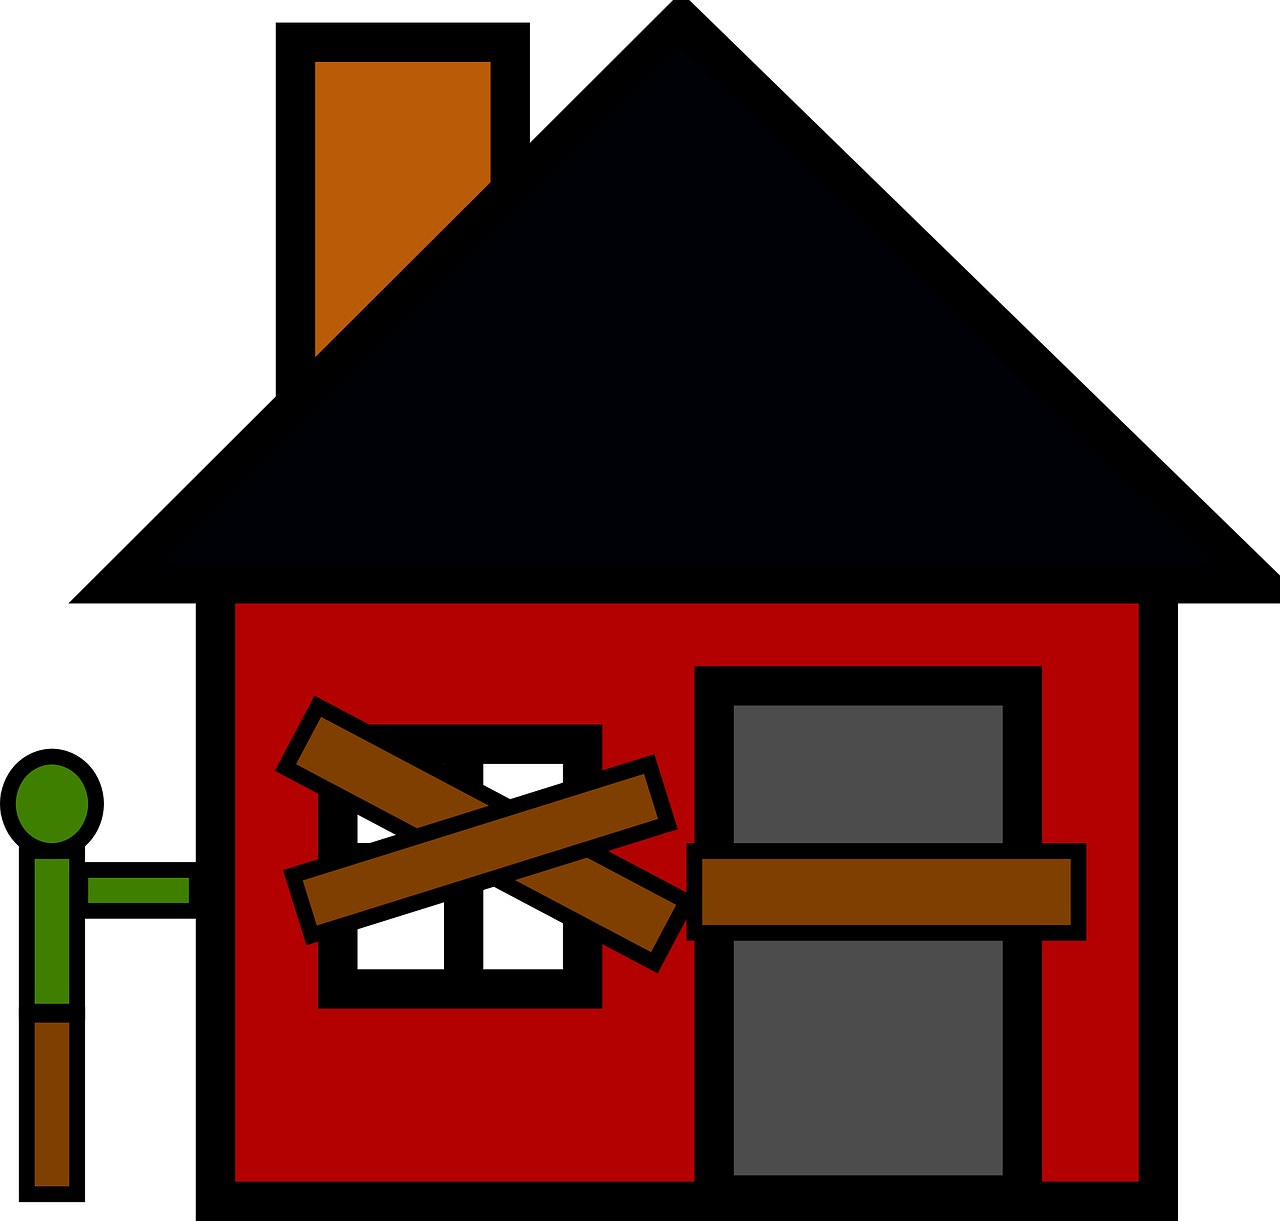 5 clipart home. Is it legal to